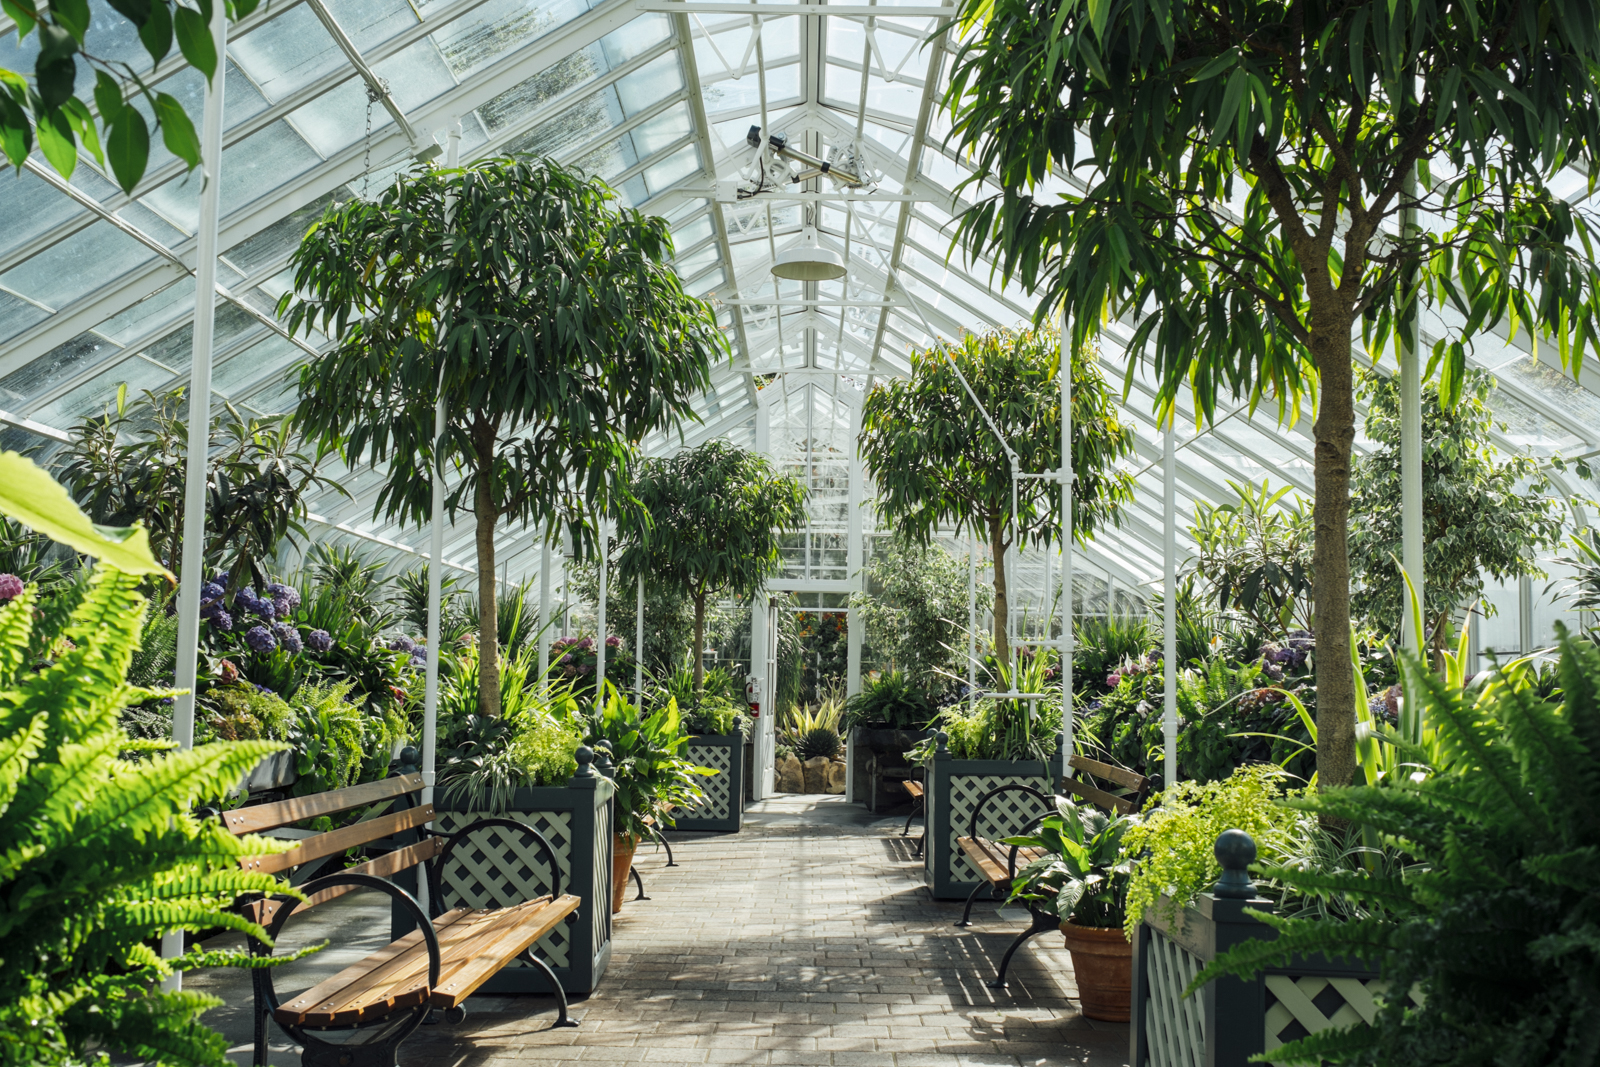 Volunteer park conservatory   in Seattle, WA by photographer Dylan Priest